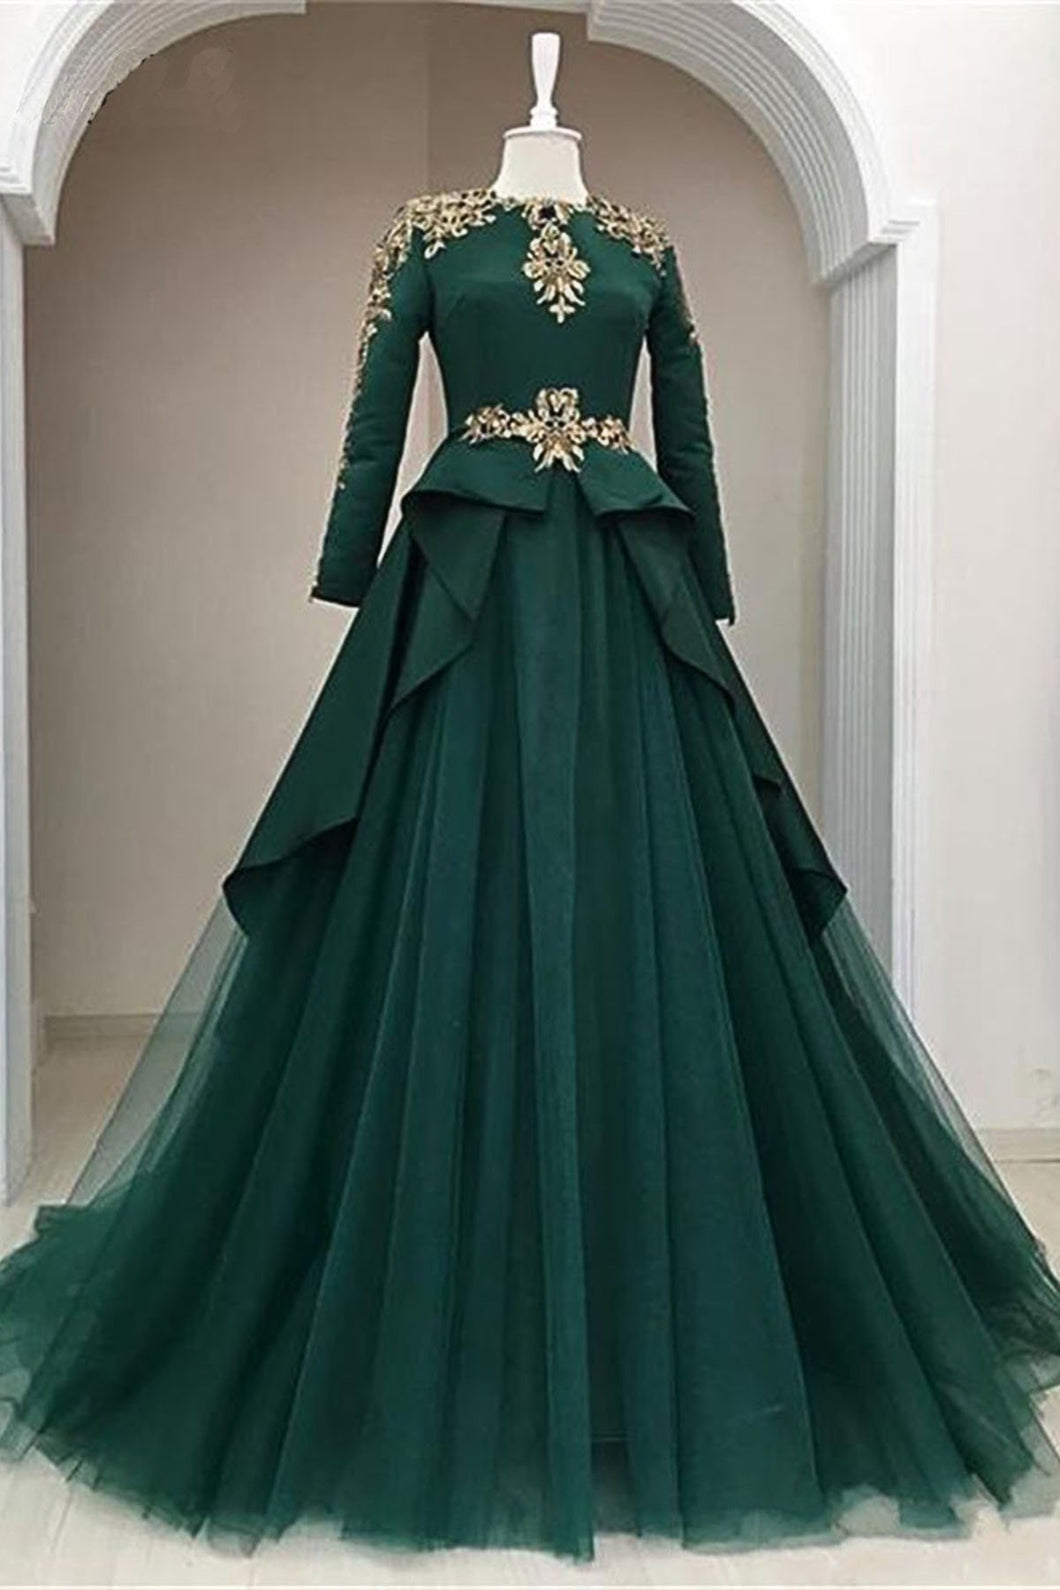 Sweet 16 Dresses | Dark Green Satin Tulle O Neck Long Sleeve Arabic Formal Prom Dress With Applique